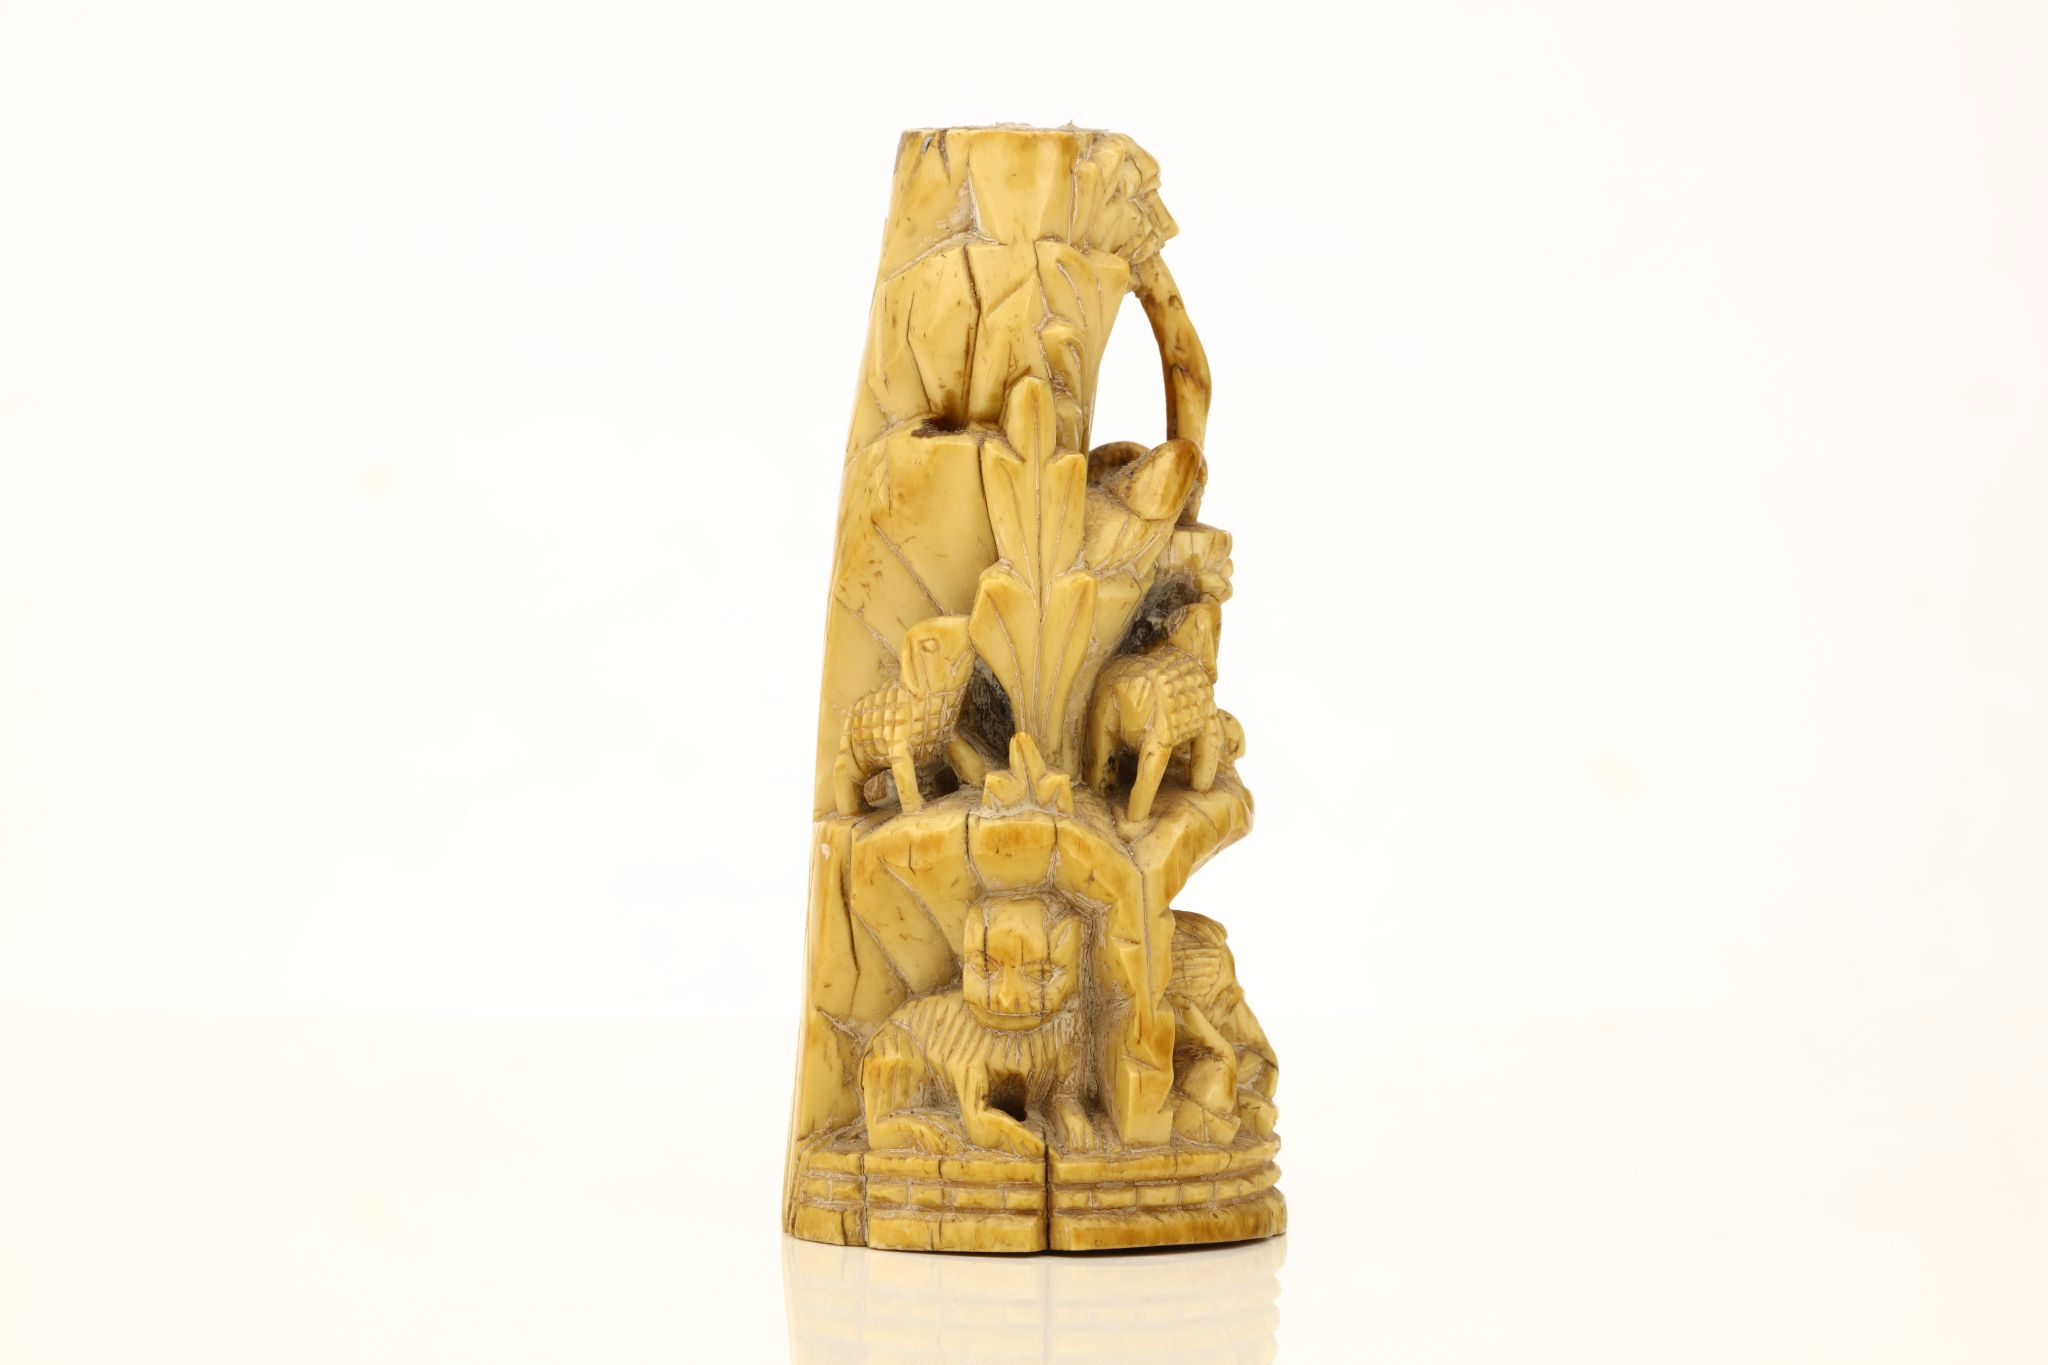 Lot 558 - A CARVED IVORY 'MOUNT OF THE GOOD SHEPHERD' PLINTH. Goa, circa 1650. Carved to depict the fountain